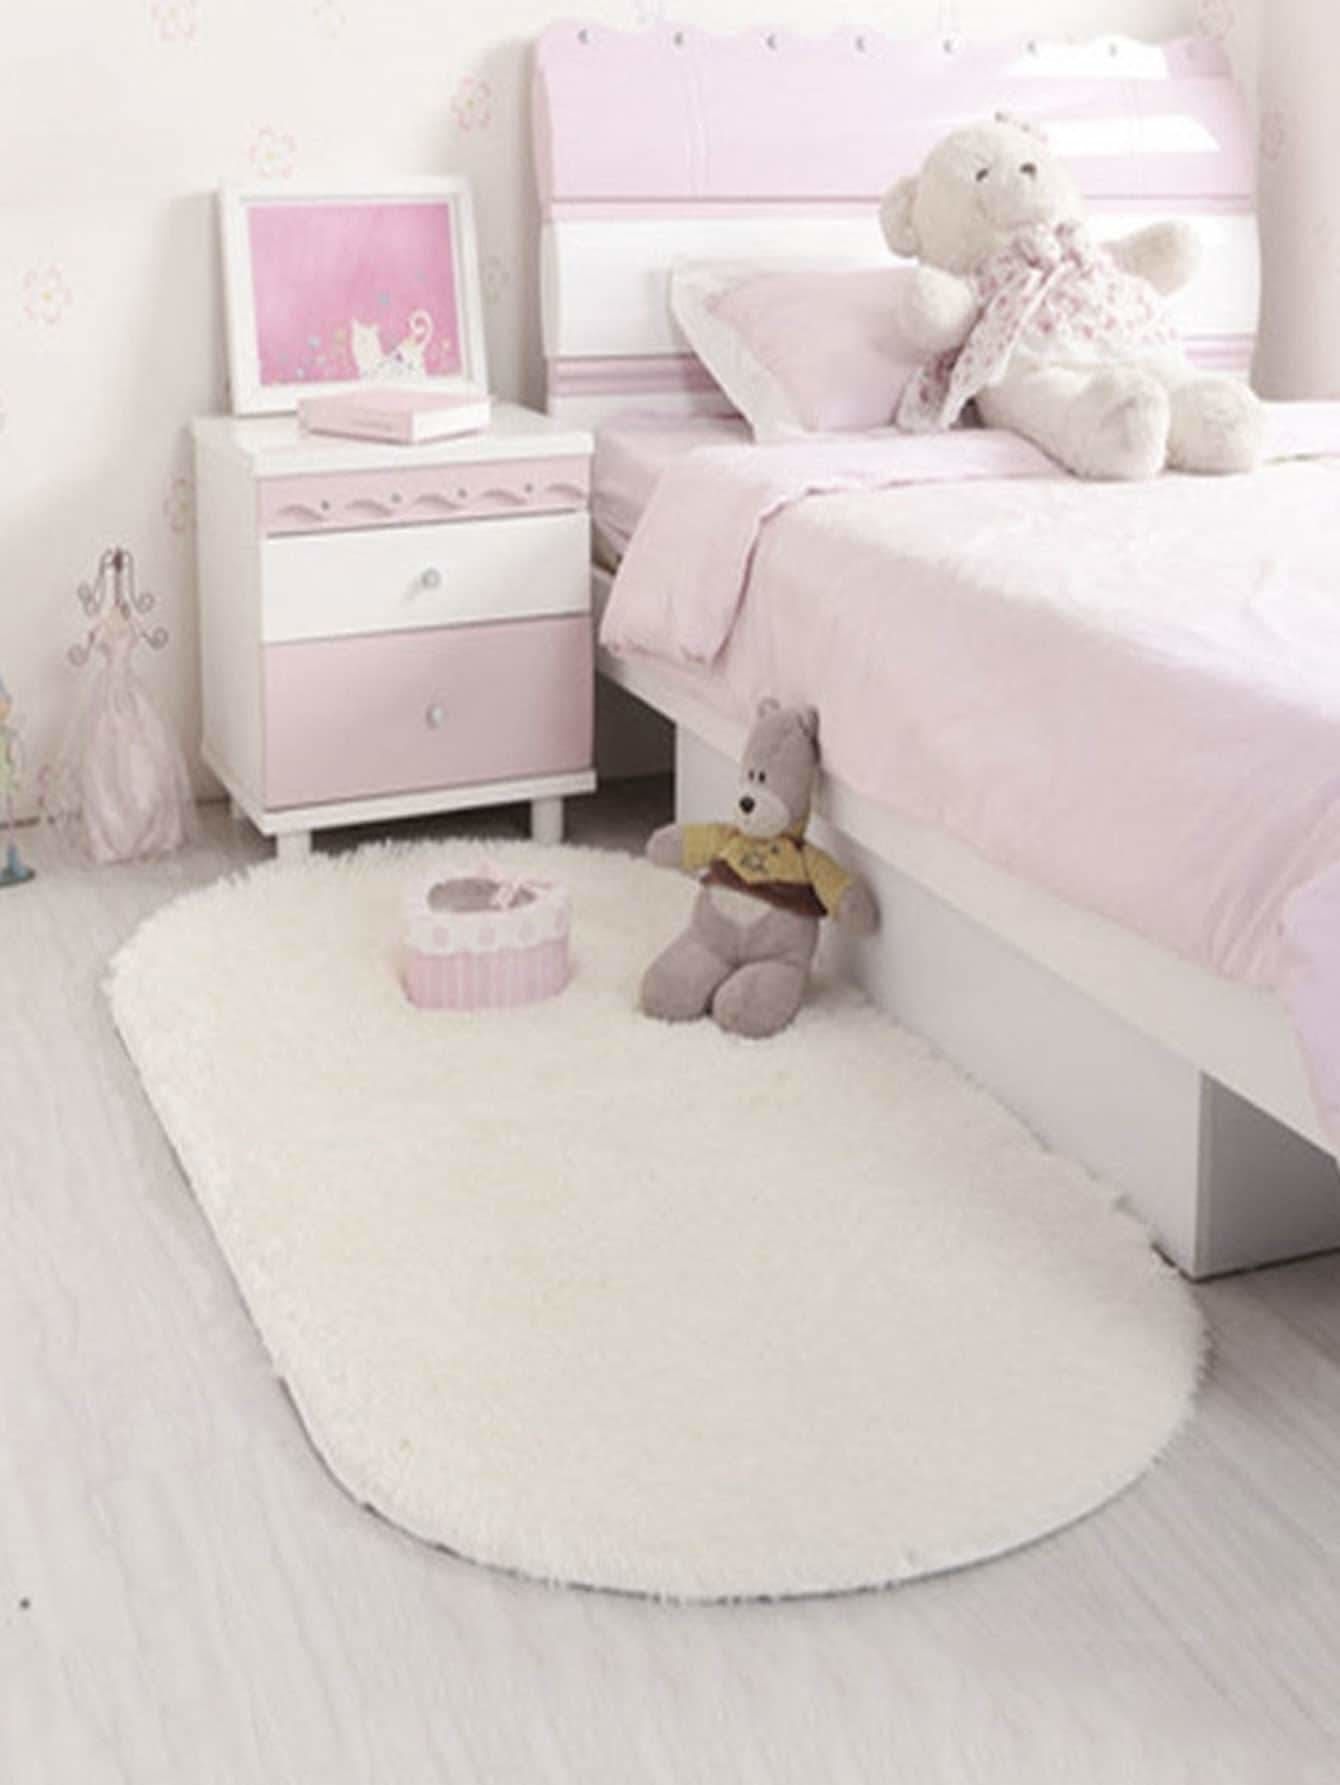 Plain Fluffy Floor Mat - Rugs & Mats